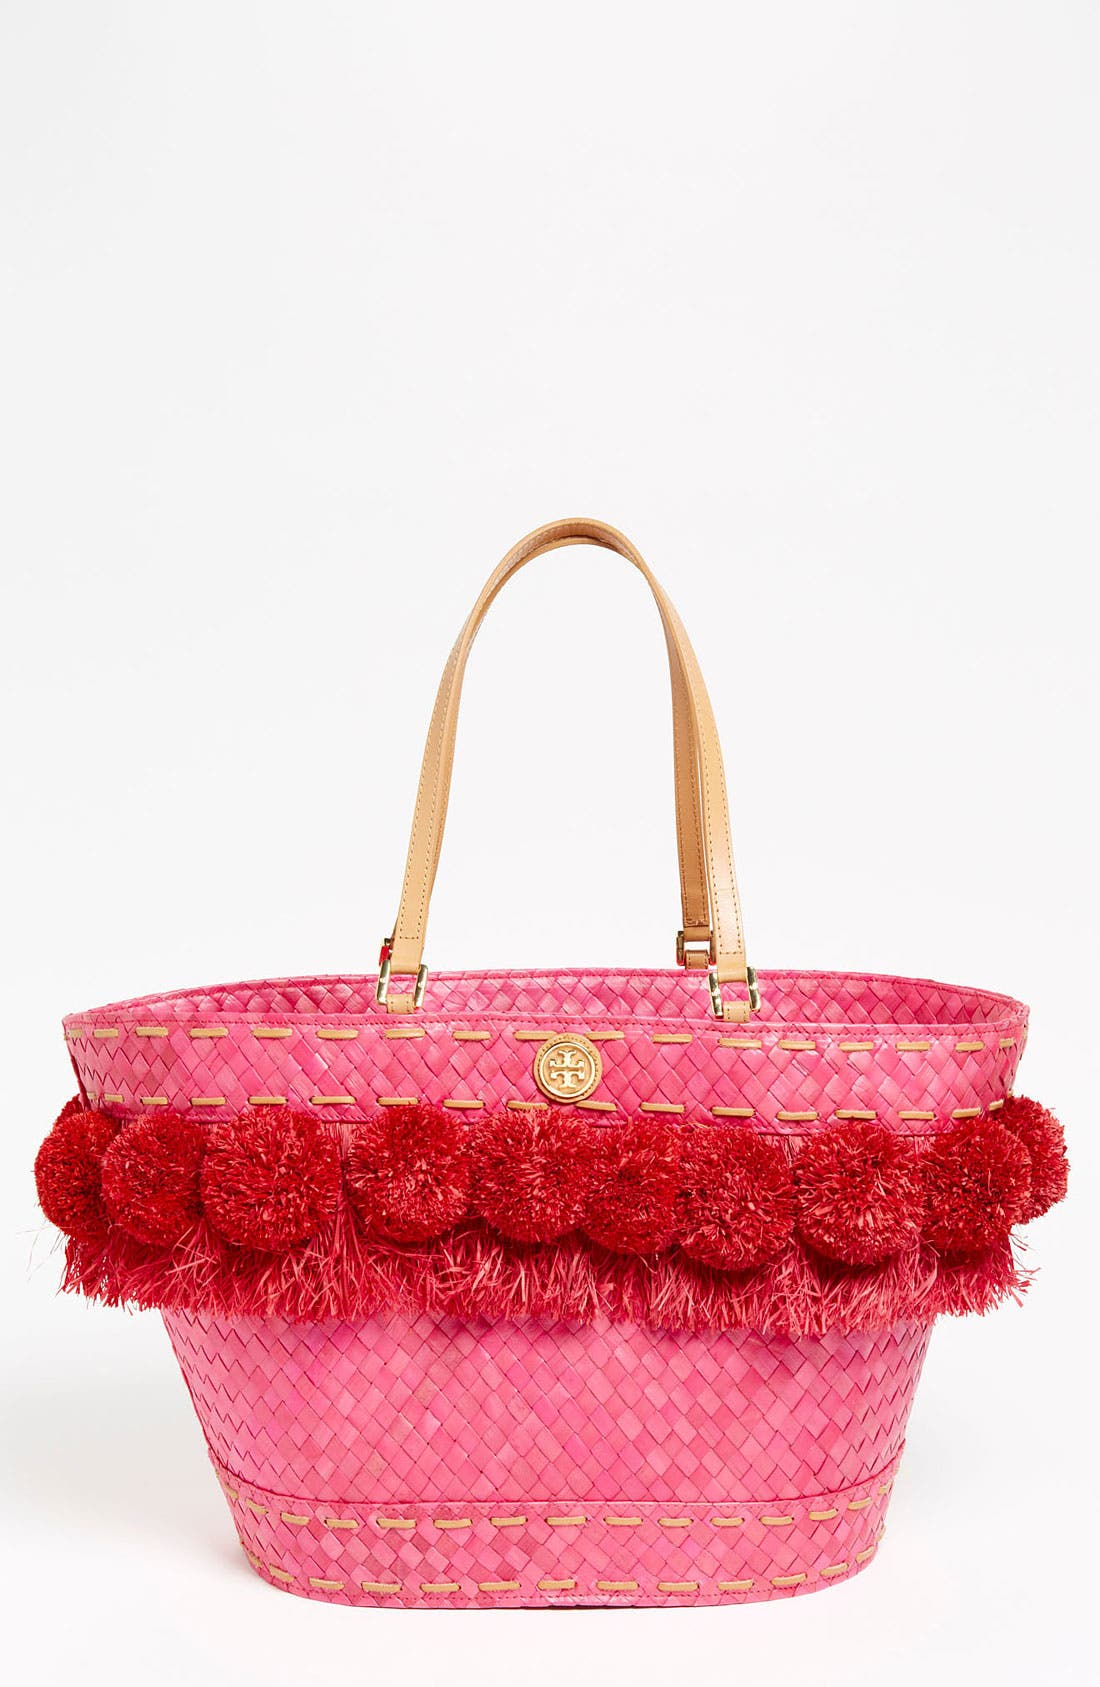 Alternate Image 1 Selected - Tory Burch 'Norah - Beachy' Bucket Tote